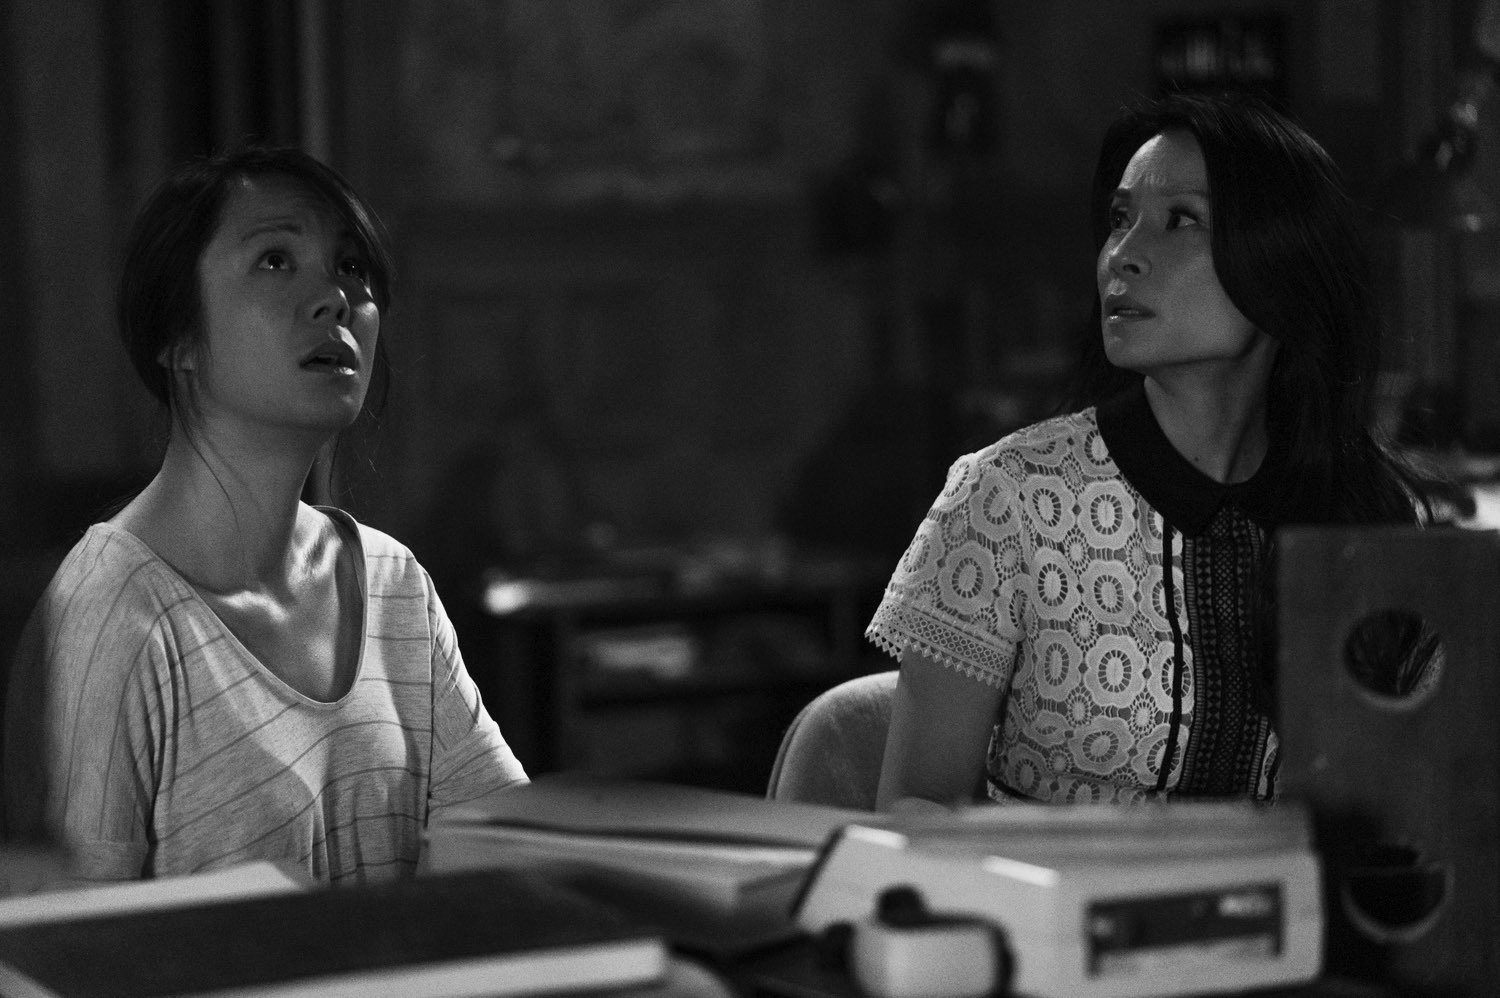 Samantha Quan and Lucy Liu get into character